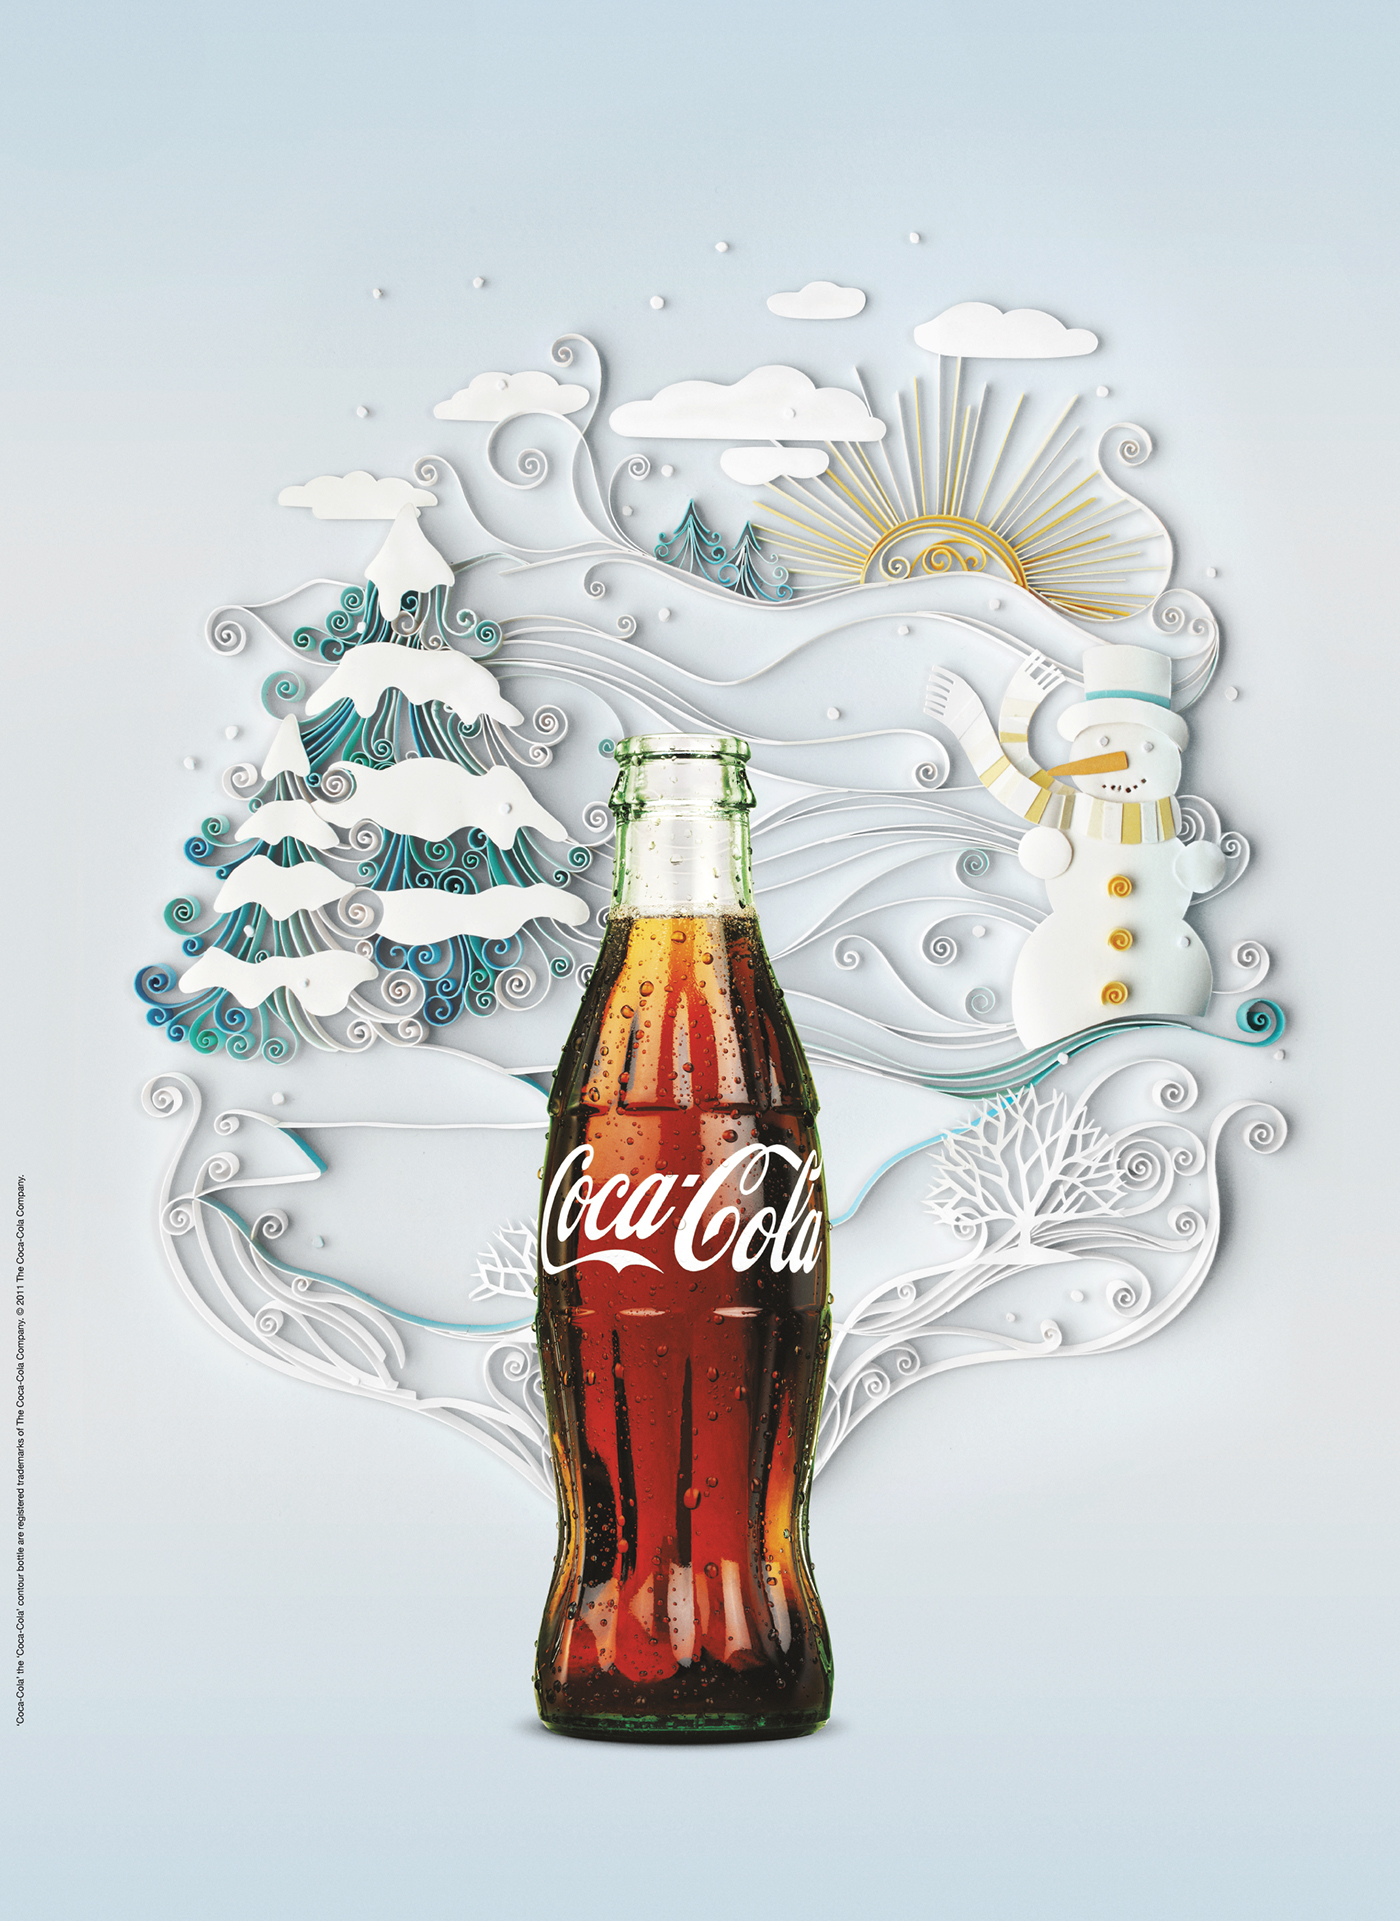 Coca-Cola // Art Direction on Behance